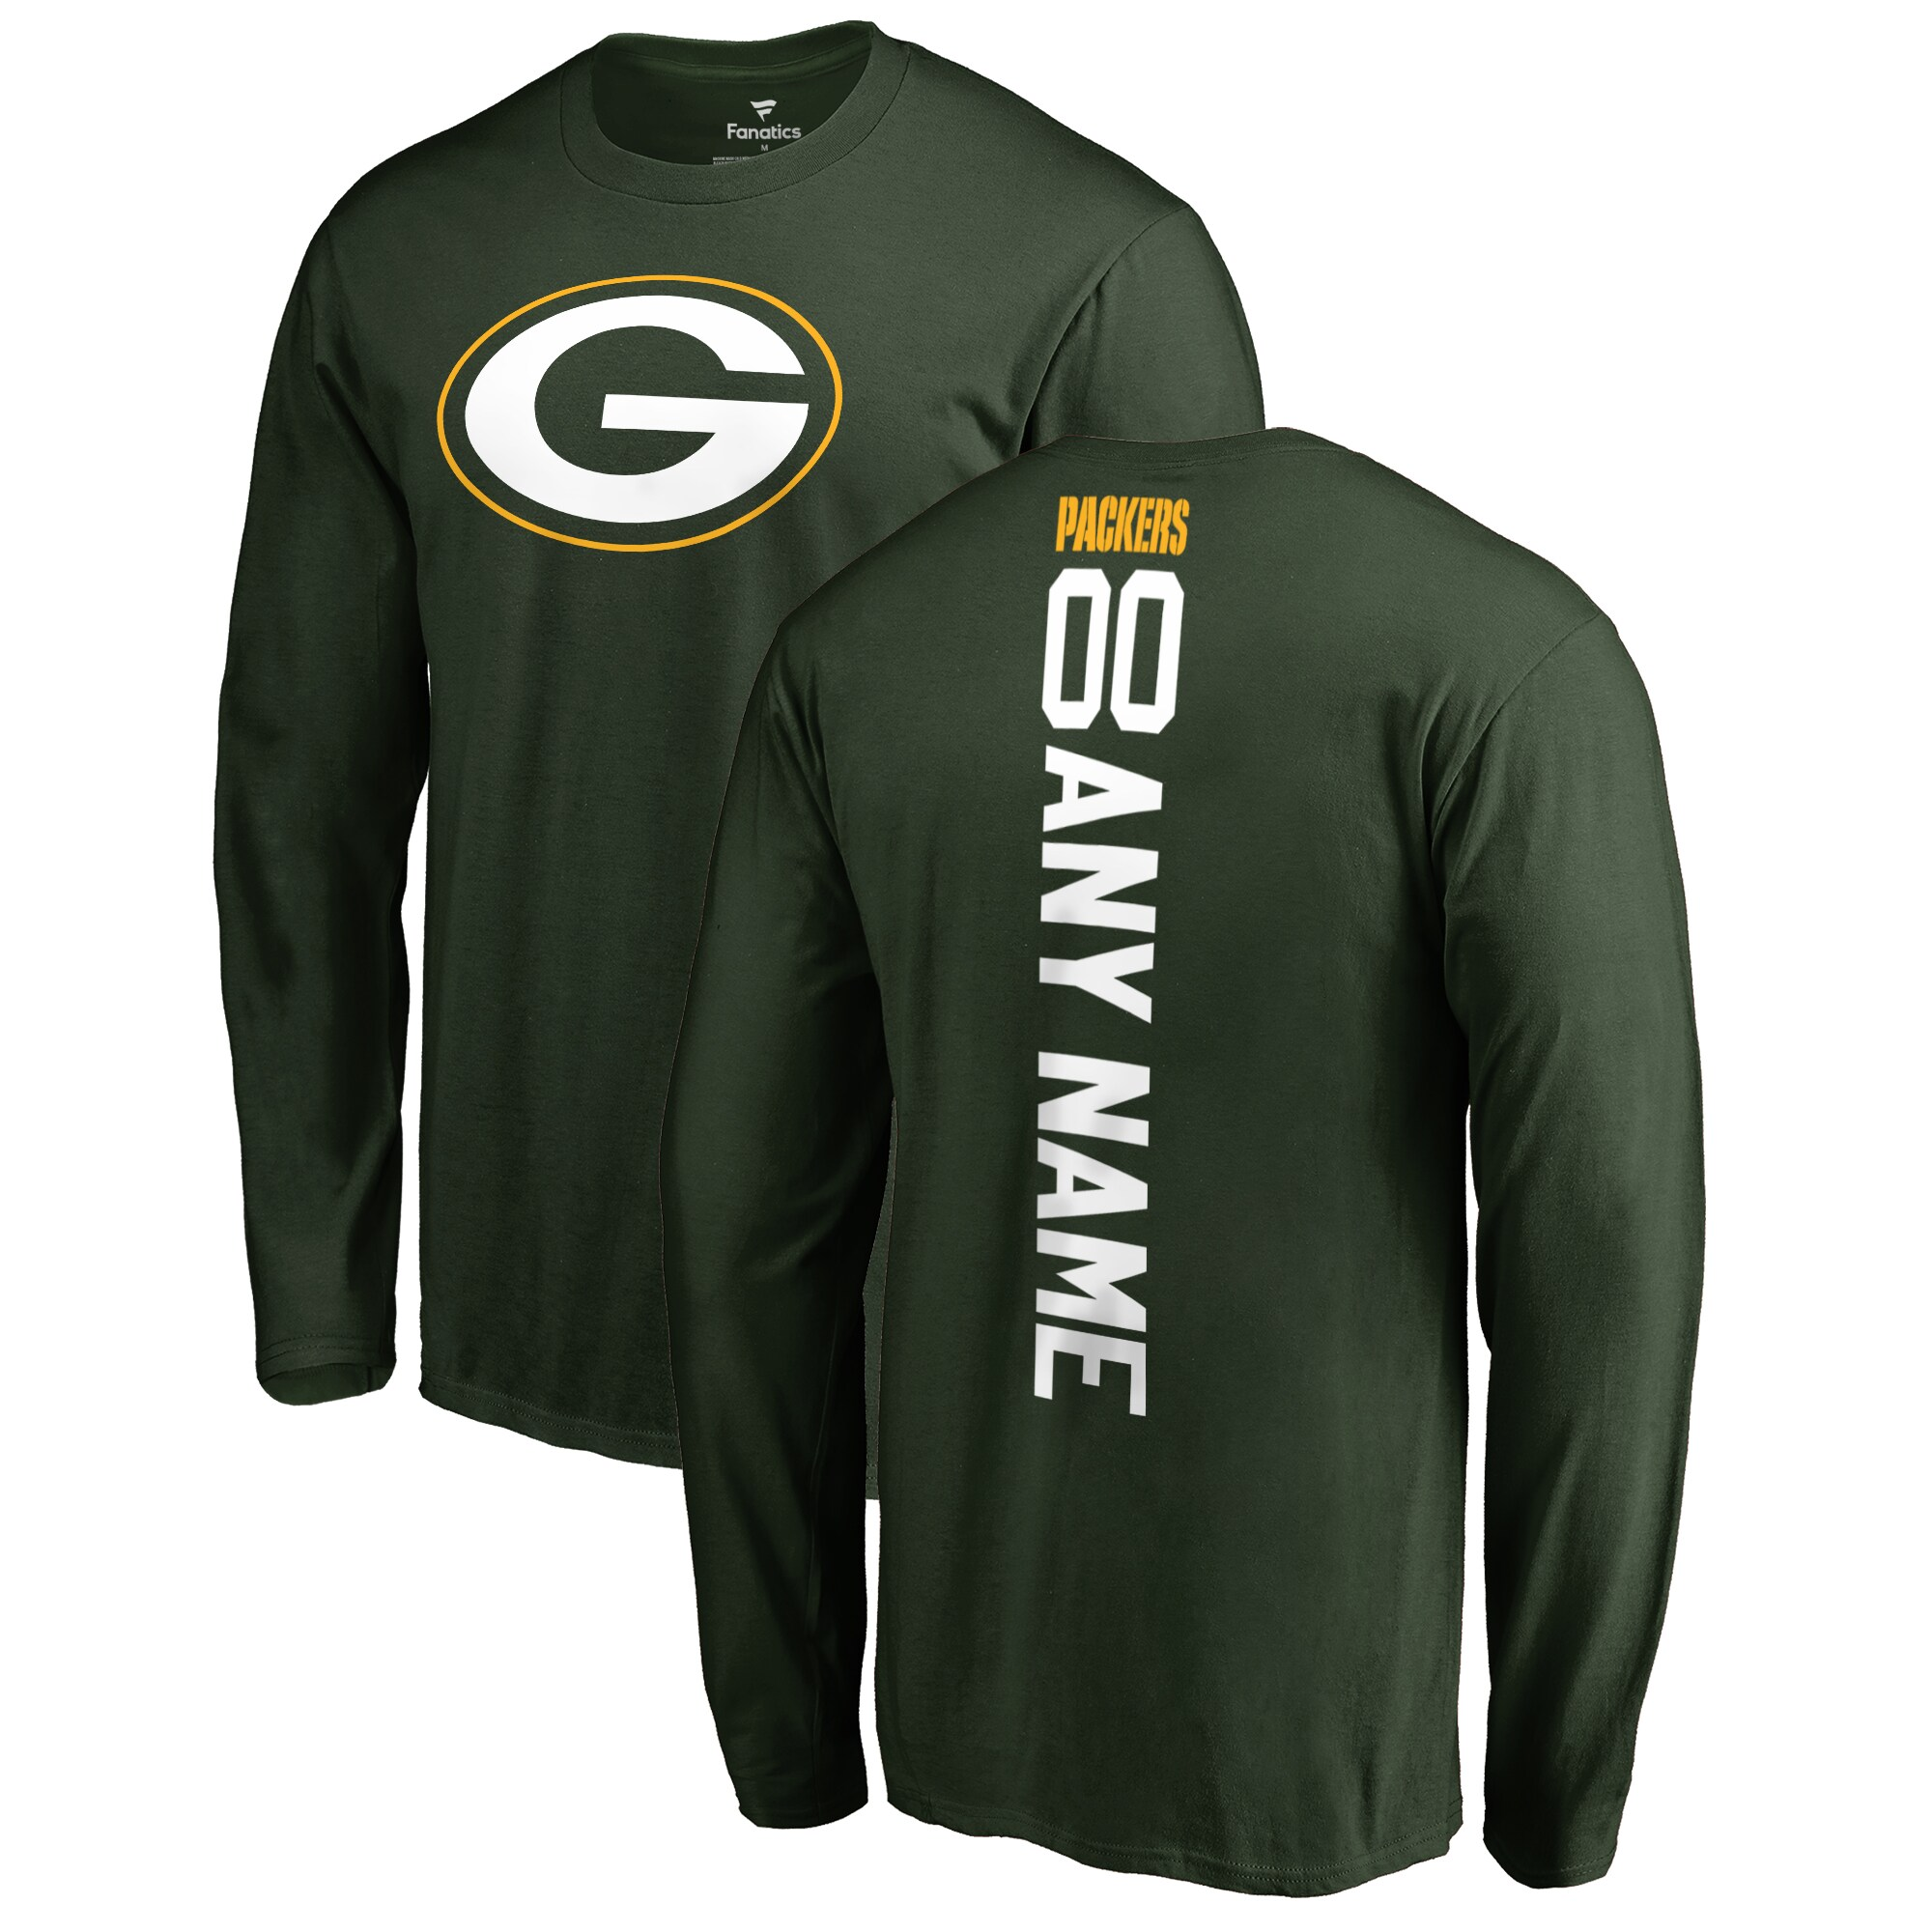 Green Bay Packers NFL Pro Line by Fanatics Branded Personalized Playmaker Long Sleeve T-Shirt - Green